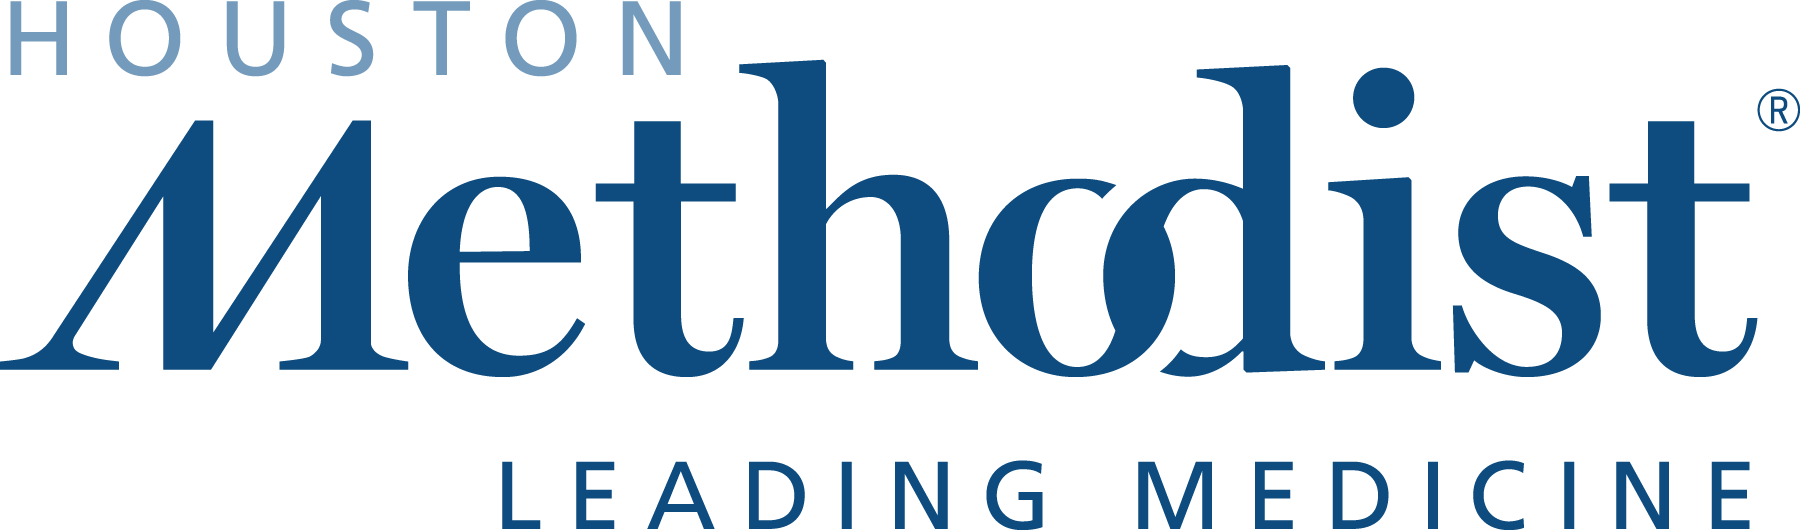 Methodist Leading Medicine logo